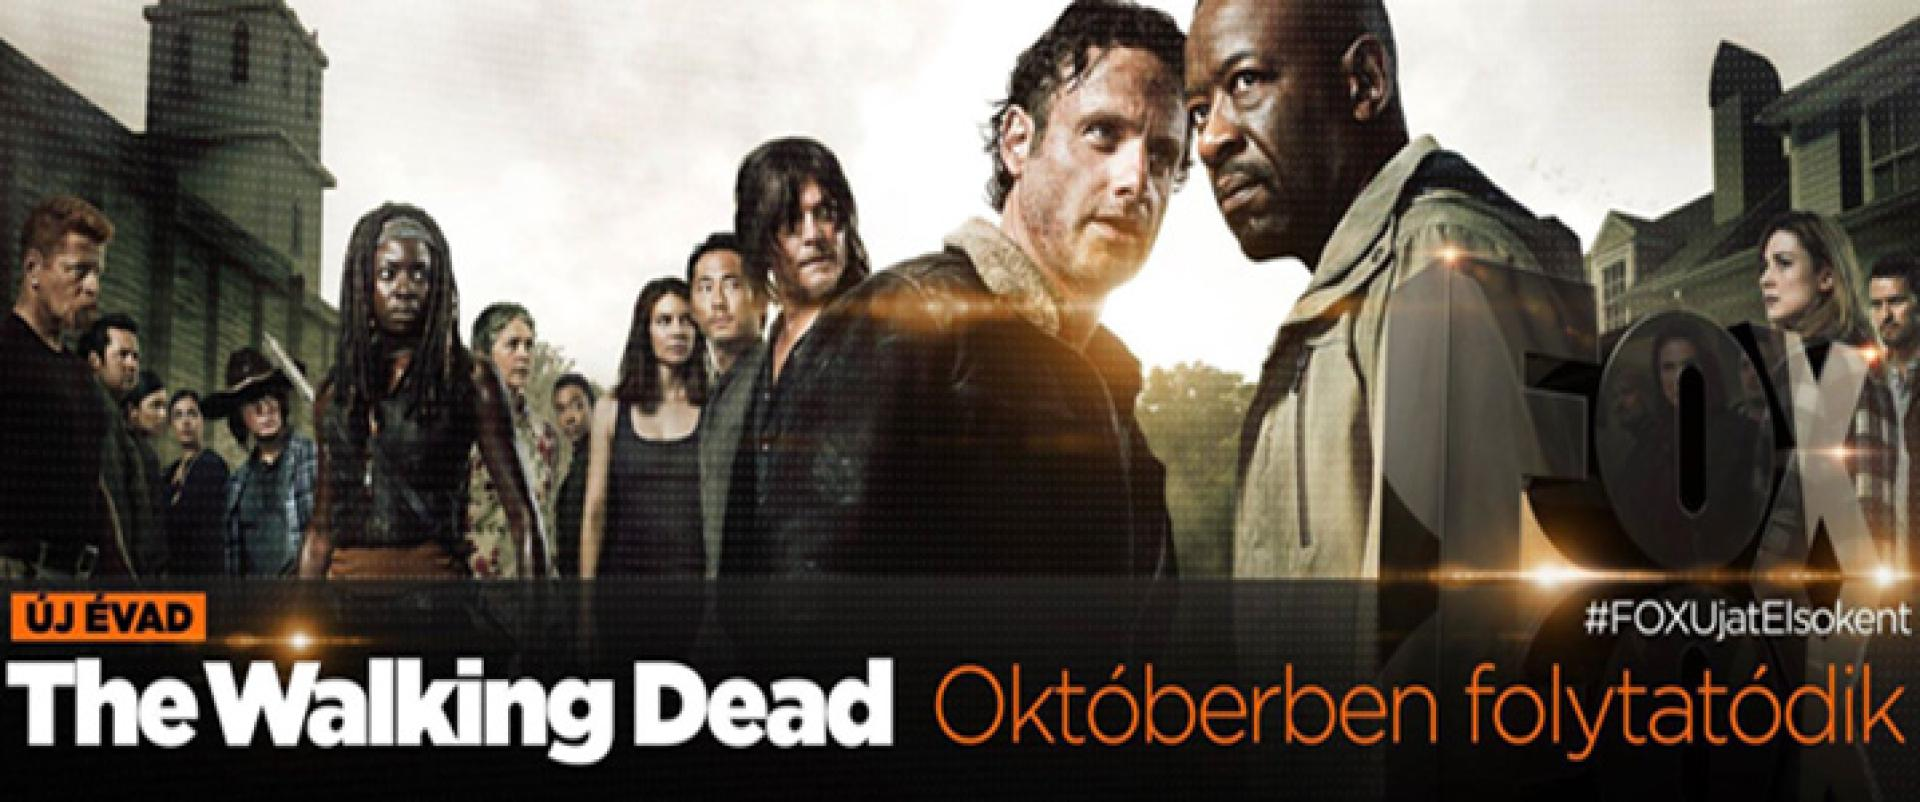 The Walking Dead, 6. évad: spoileres infó